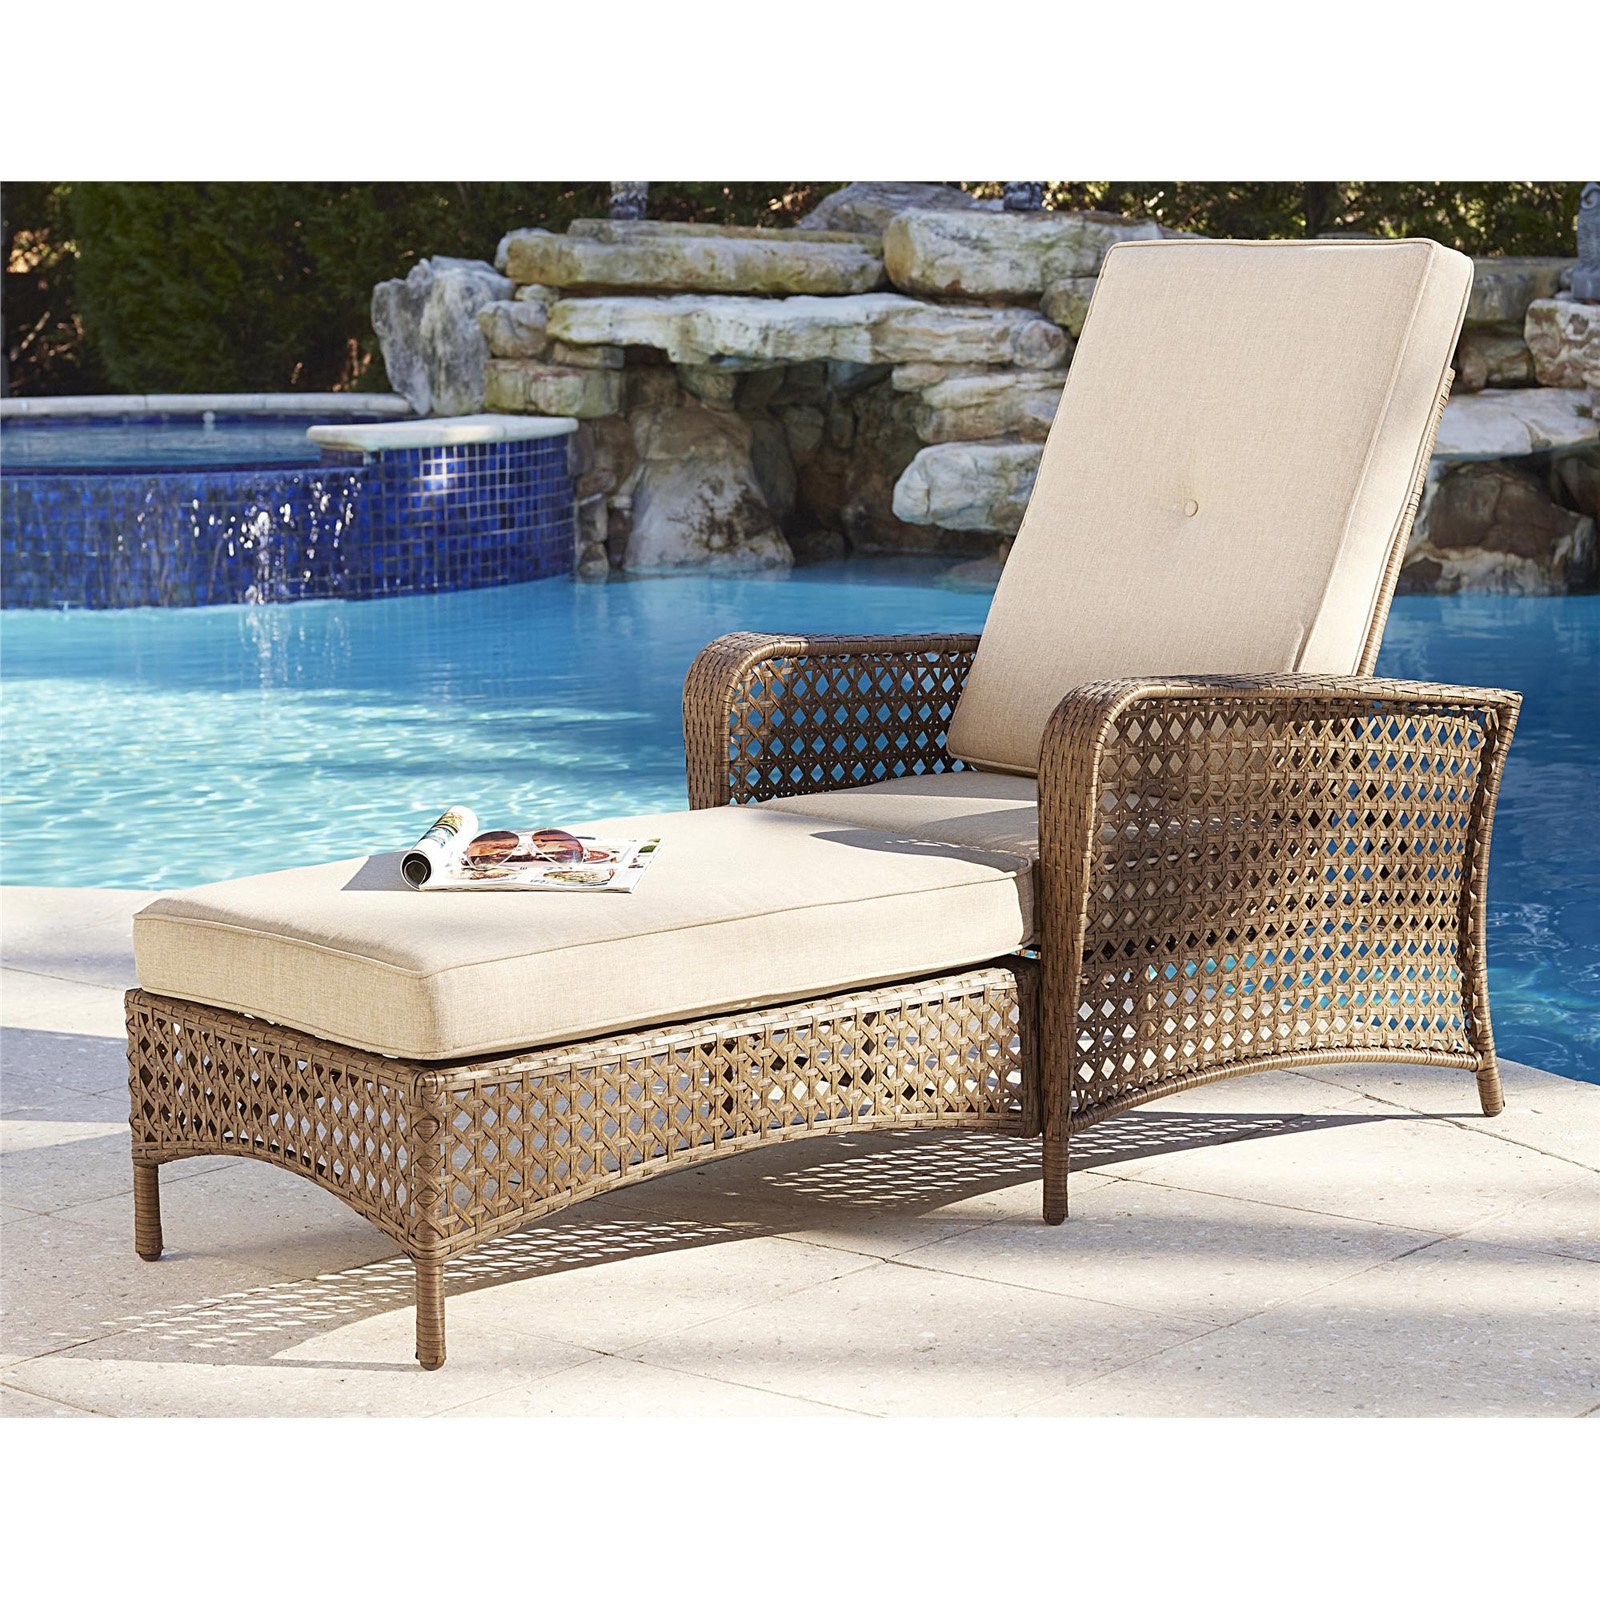 Cosco Outdoor Adjustable Chaise Lounge Chair Lakewood Ranch Steel Woven Wicker Patio... by Cosco